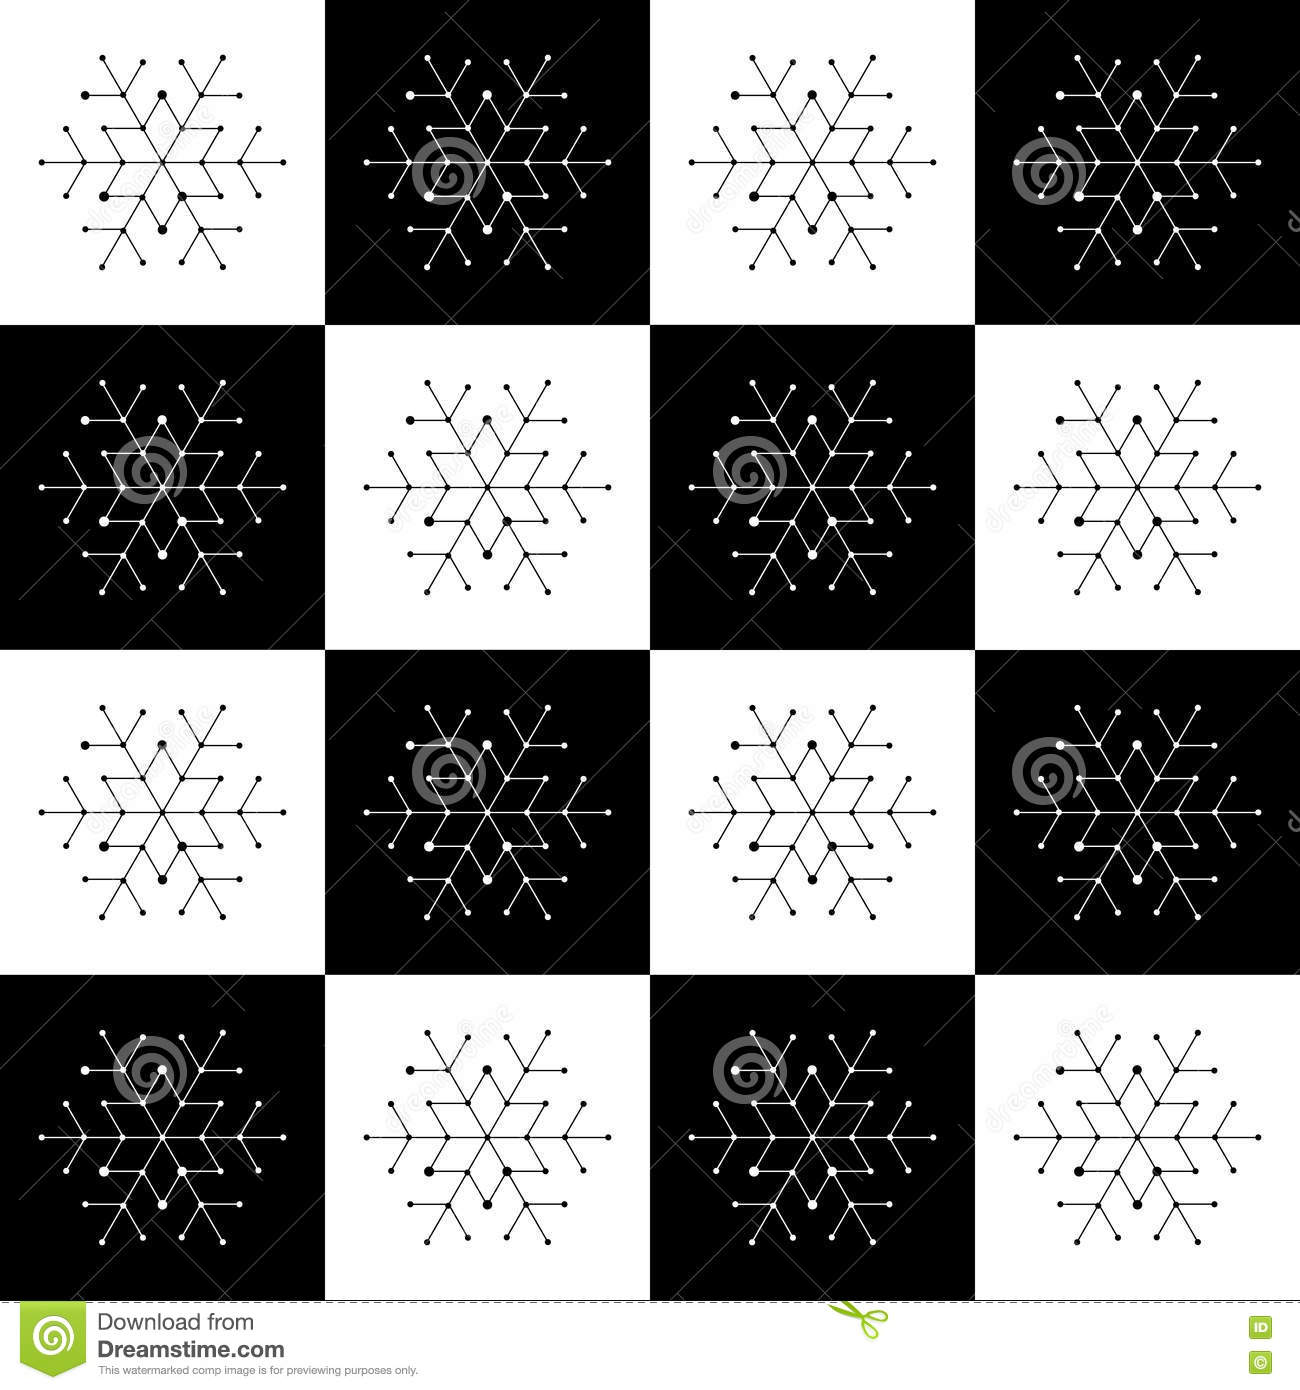 christmas seamless pattern on chessboard background new year wallpaper winter black and white wrapping